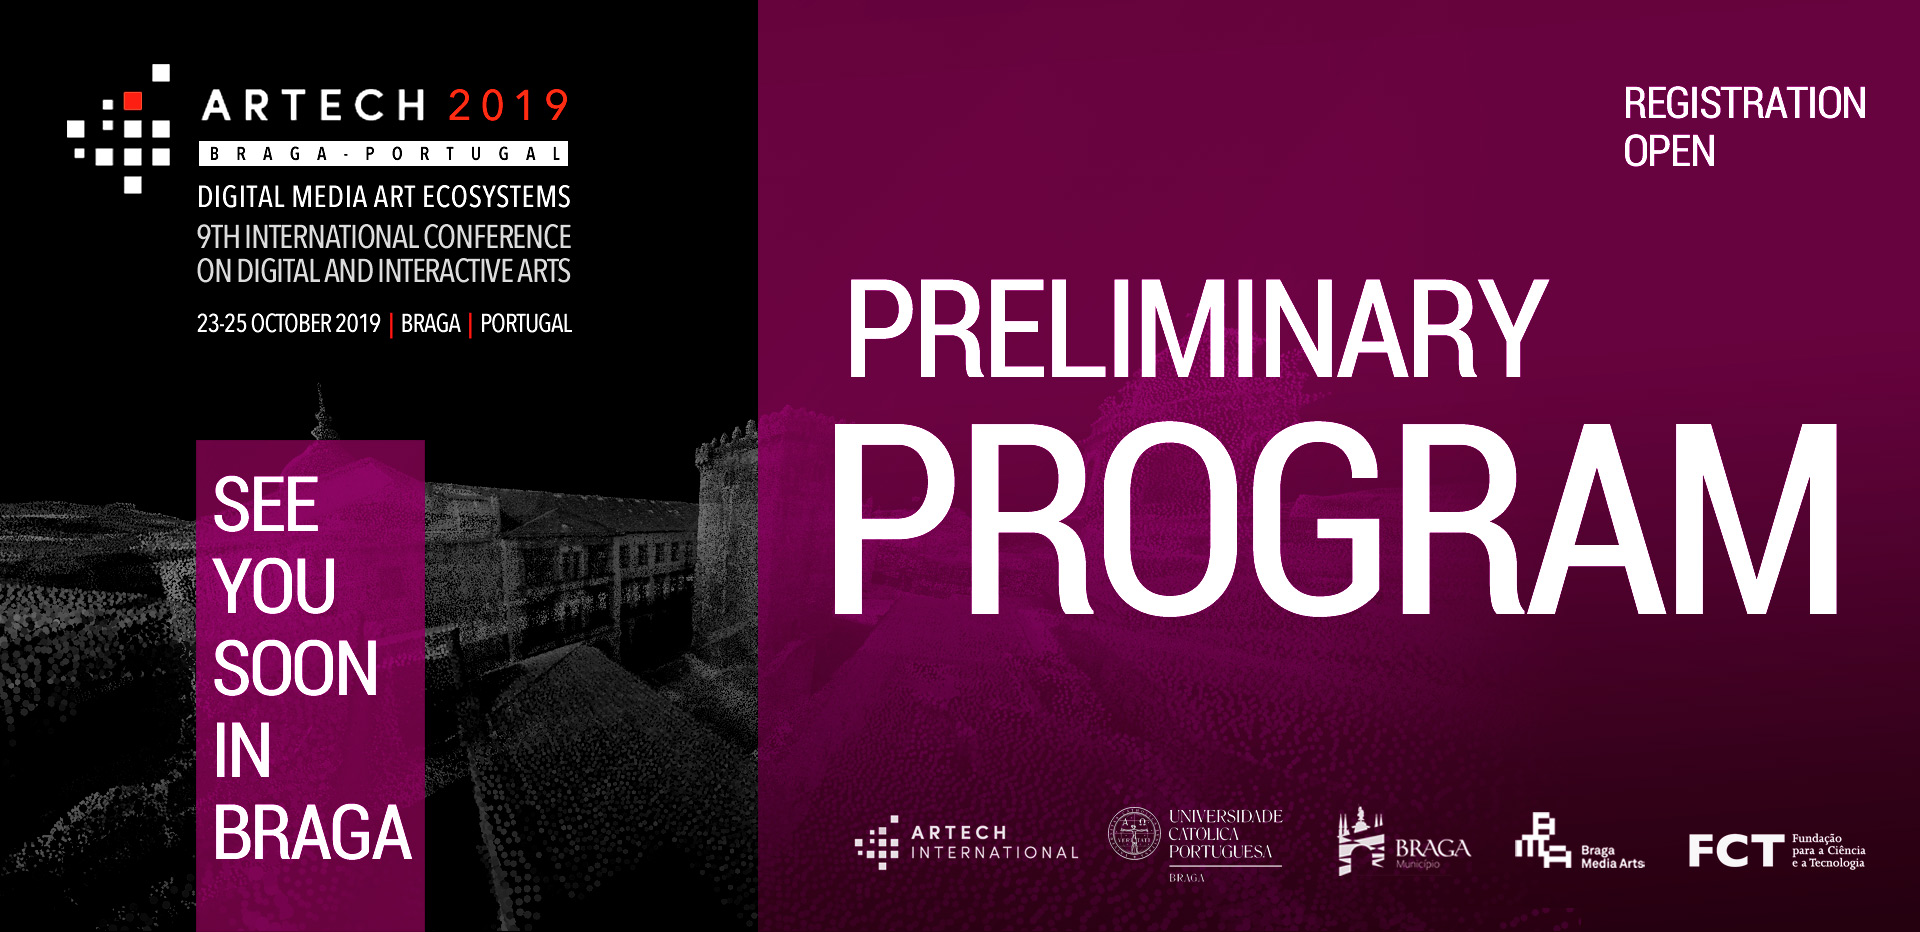 Artech 2019 Preliminary Program